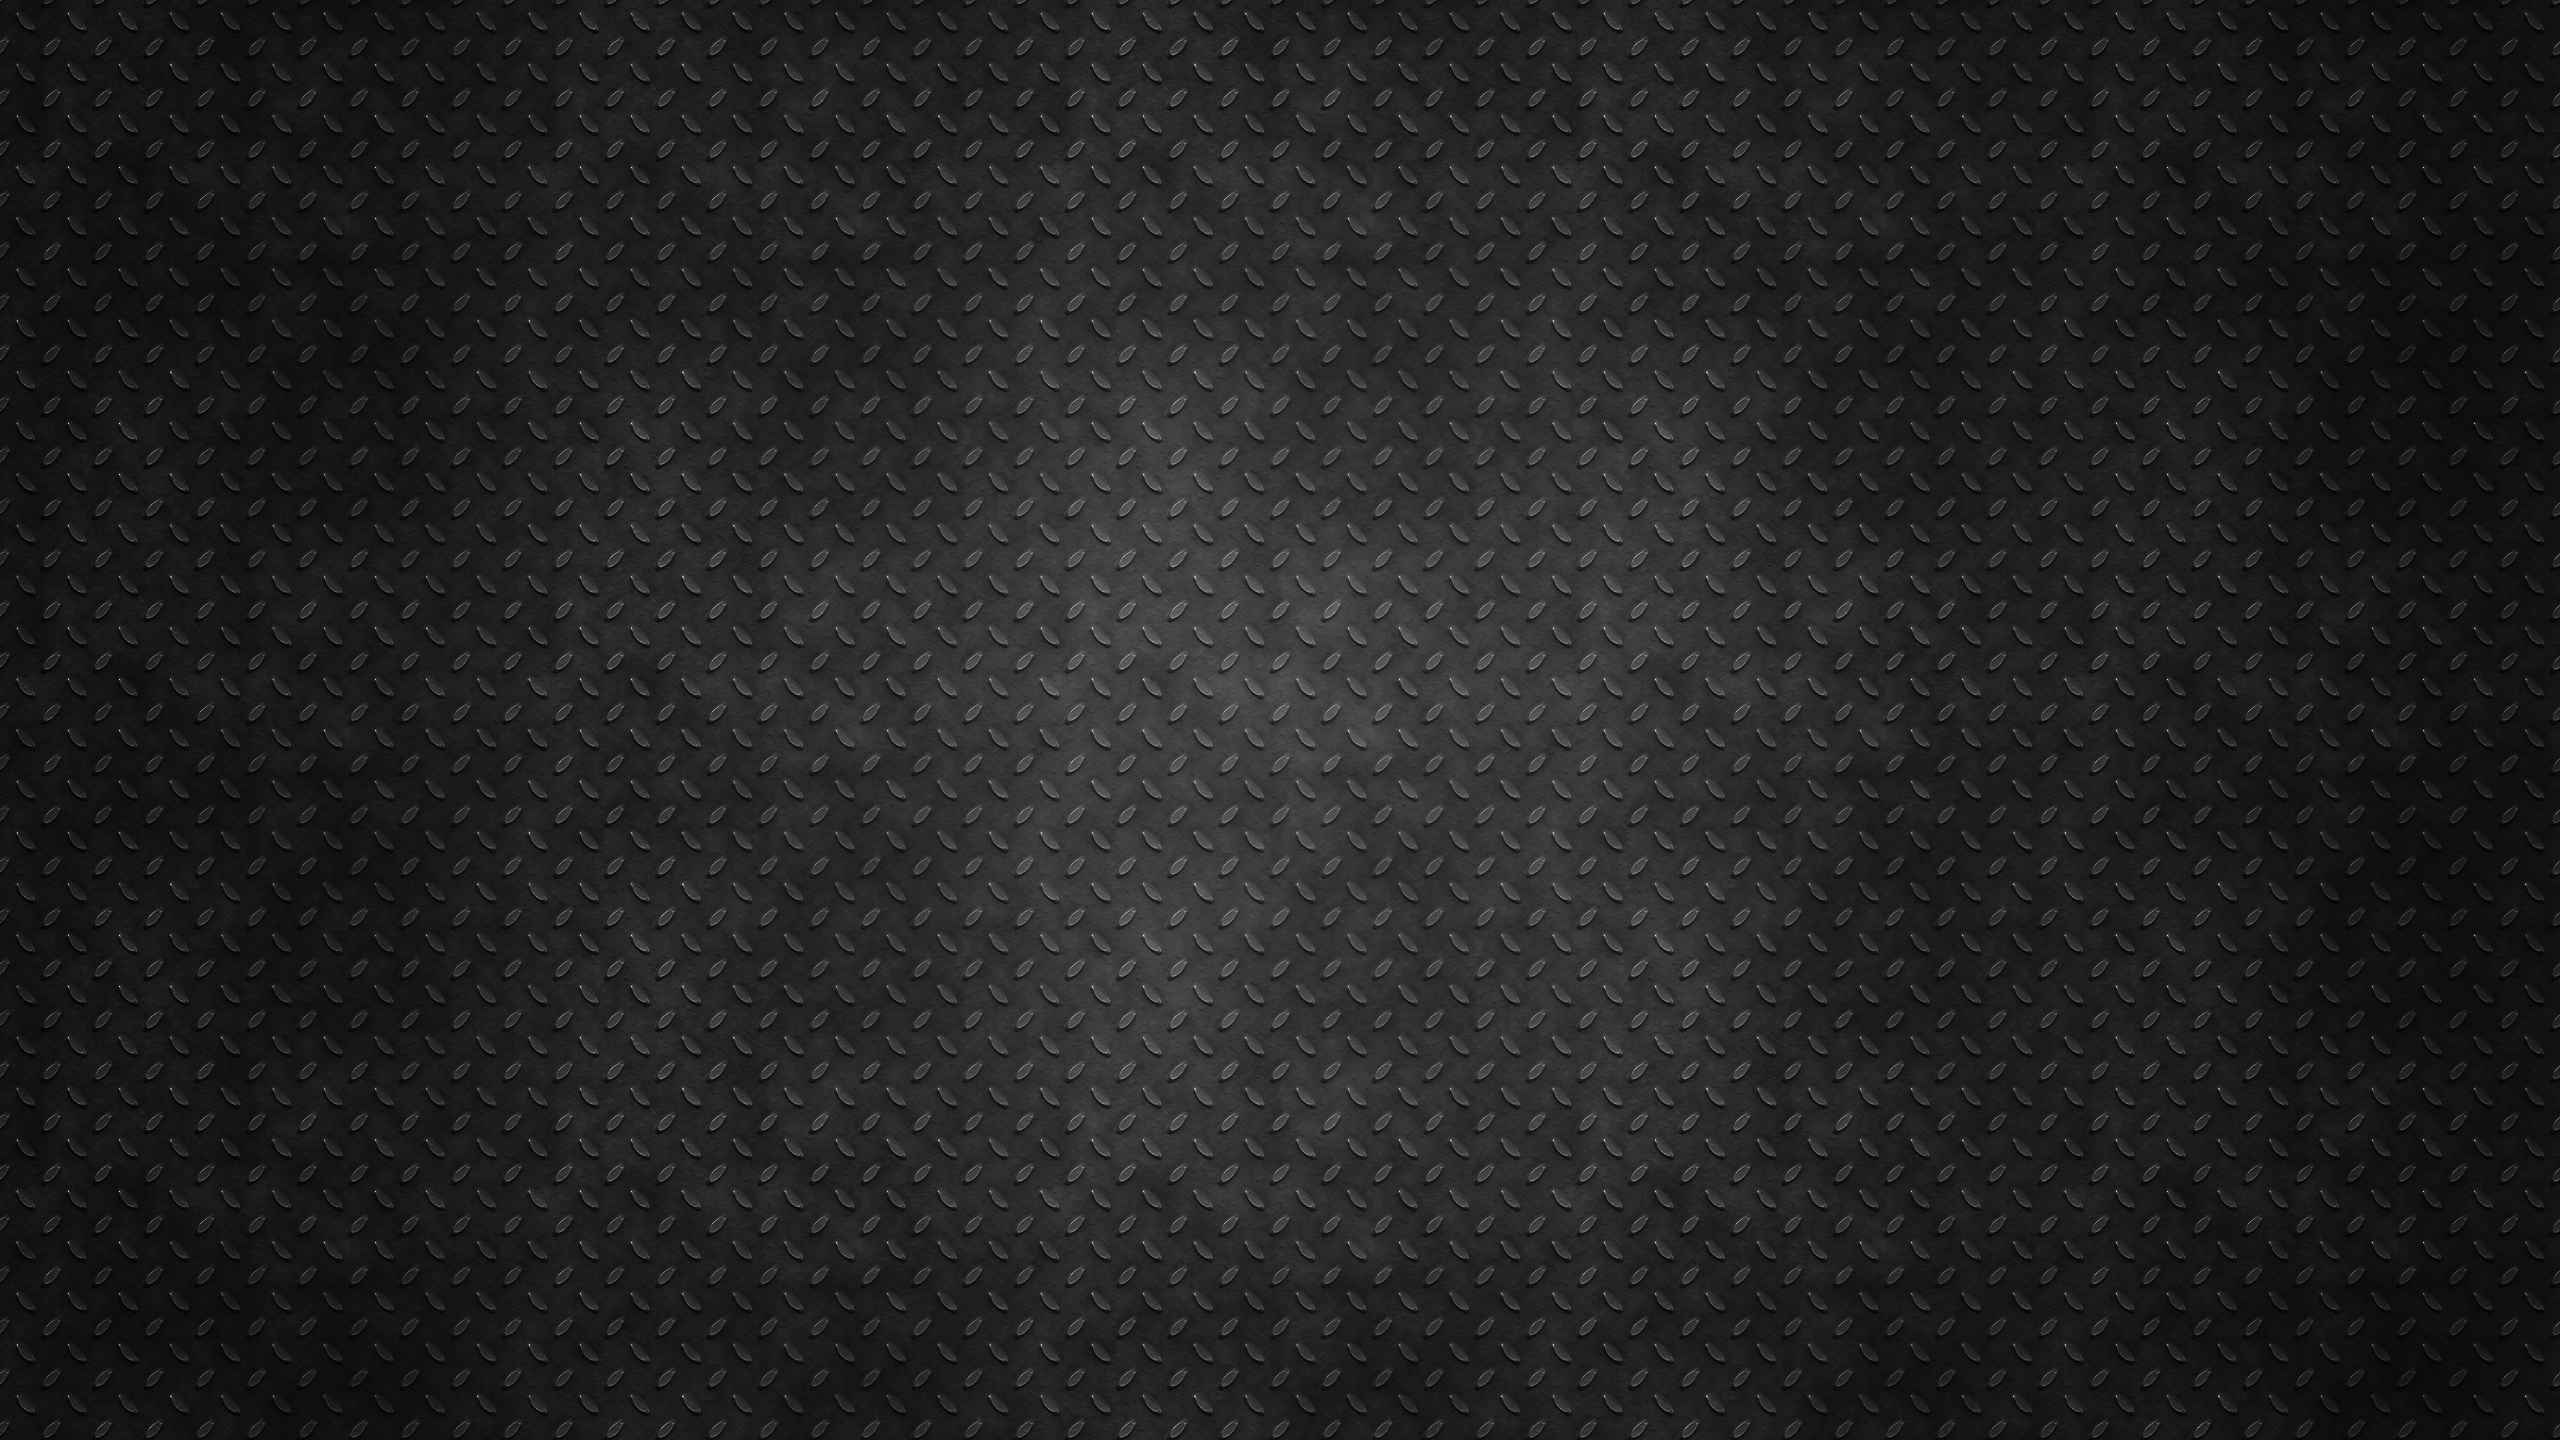 metal texture black background metal texture wallpaper 2560x1440jpg 2560x1440